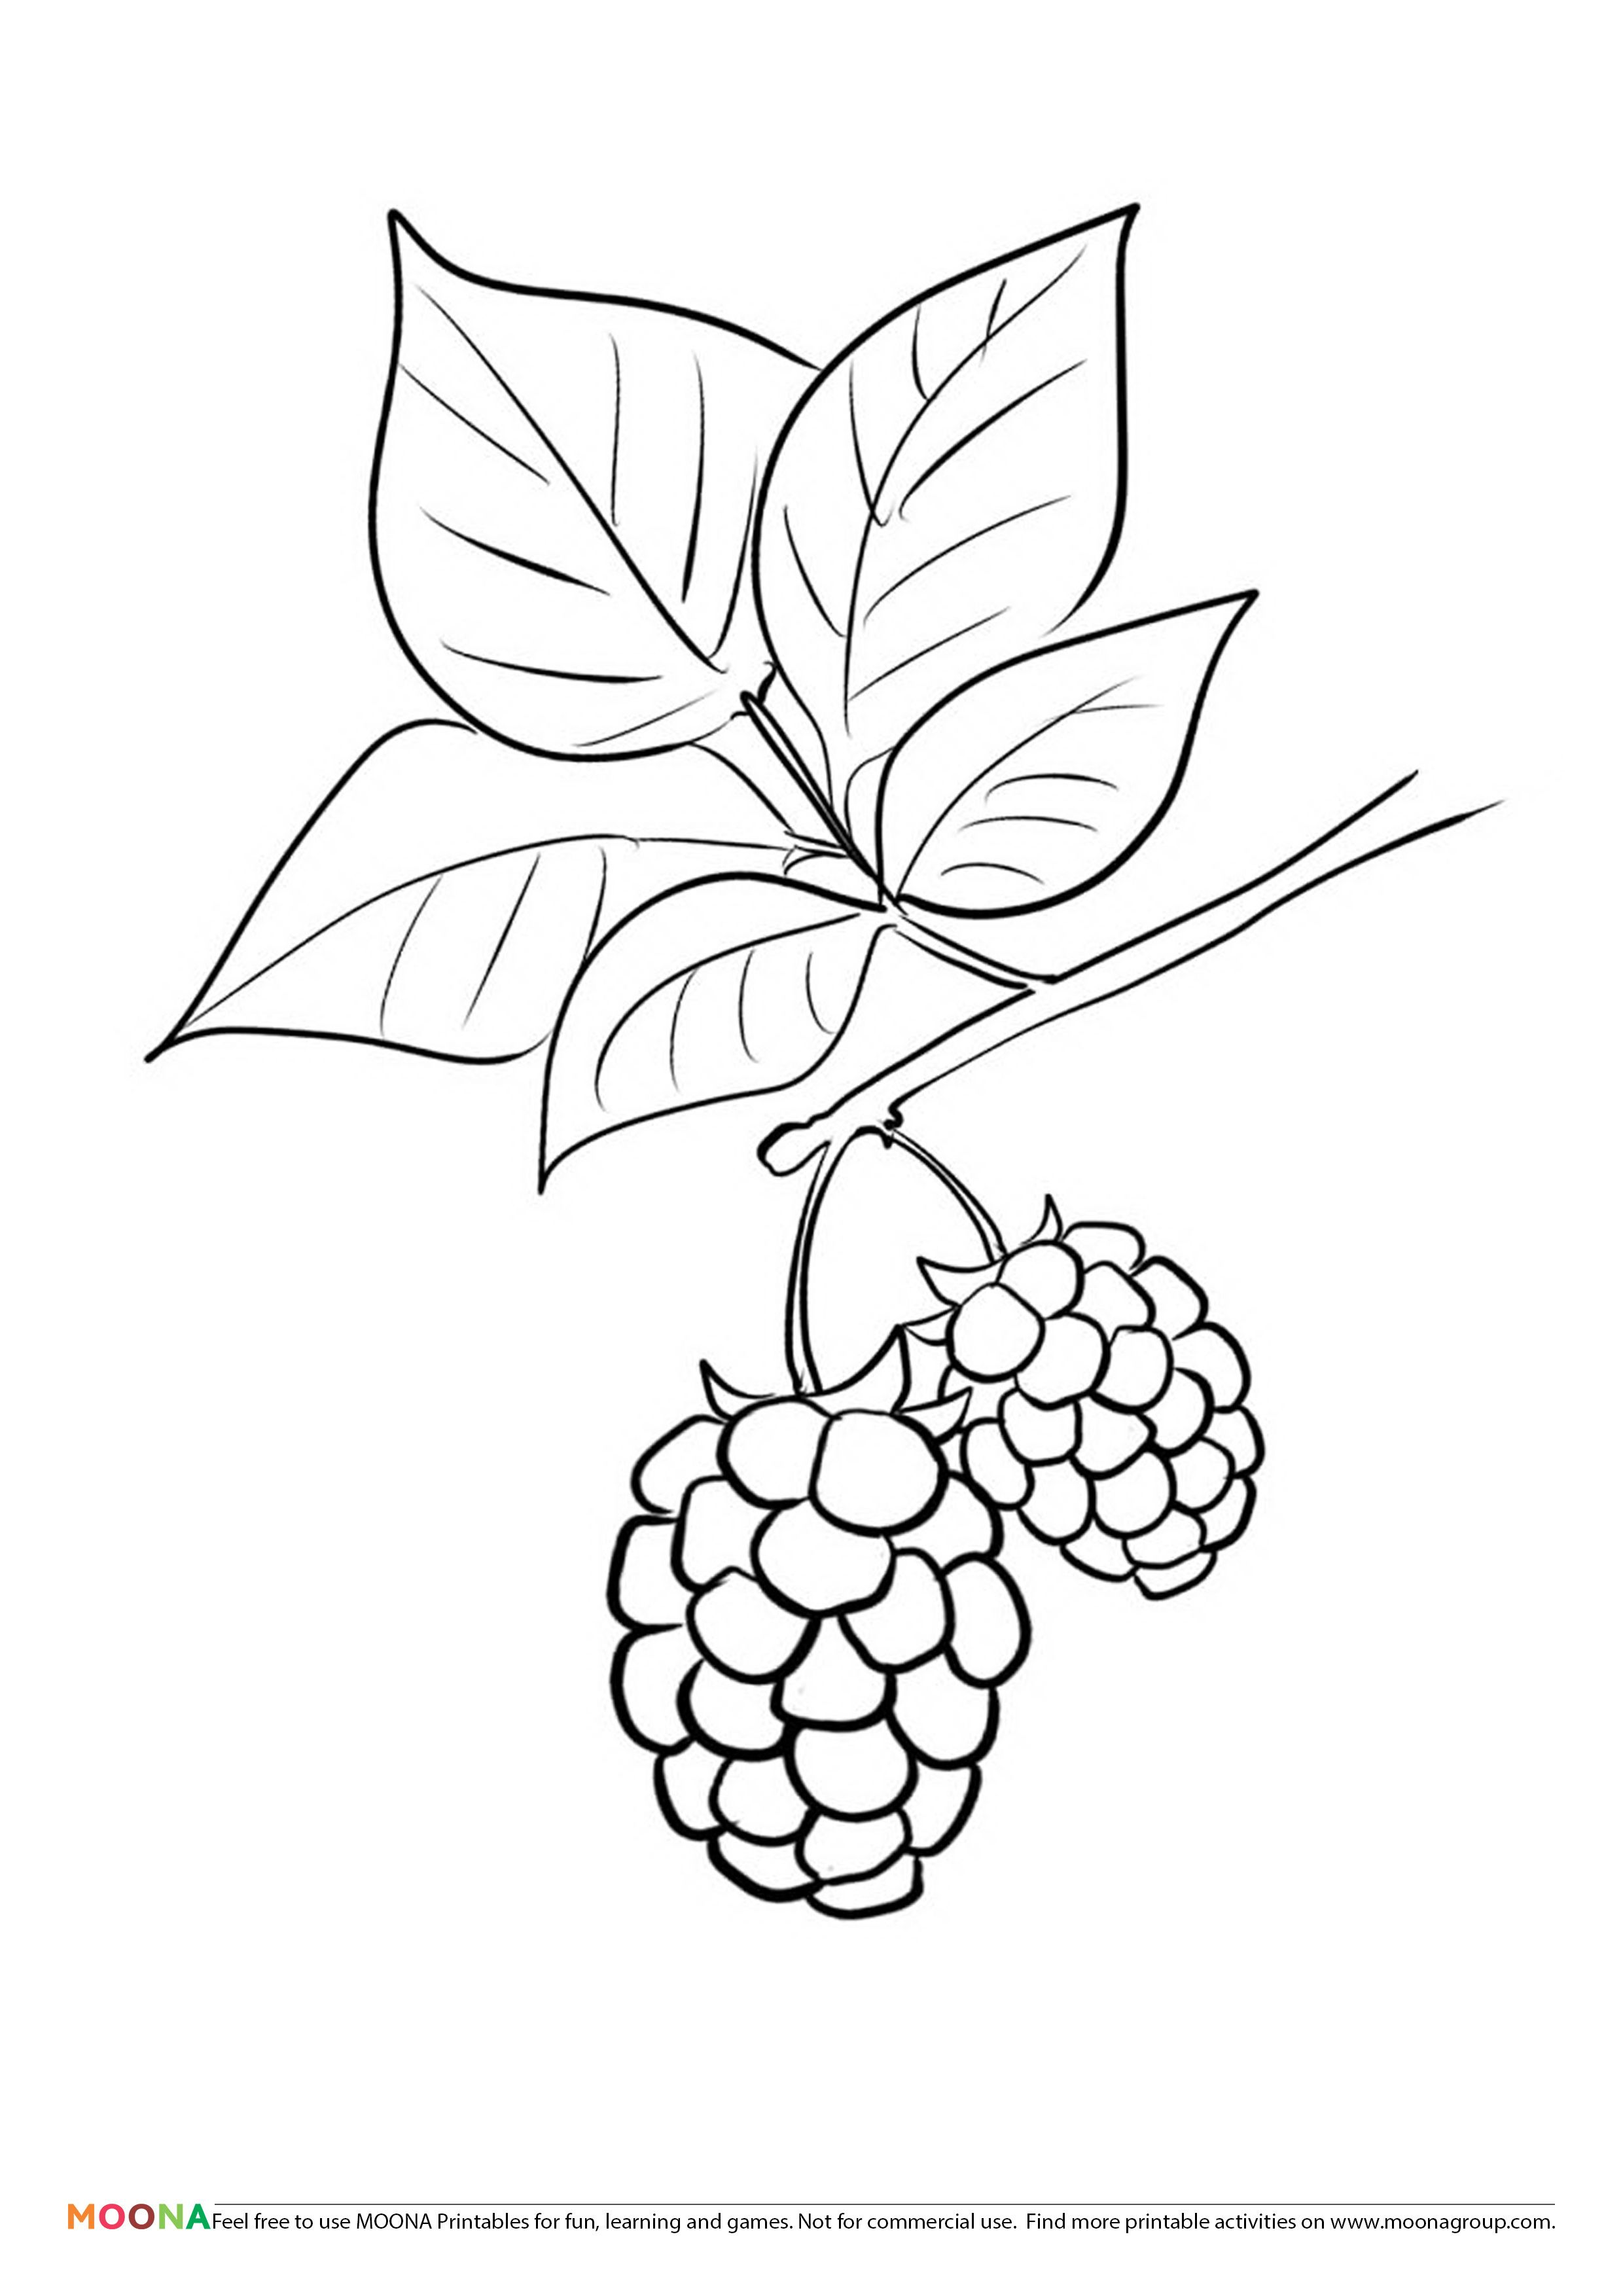 Free Printable Coloring Pages For Toddlers And Preschoolers Blackberry Click Through To Custom Coloring Pages Fruit Coloring Pages Free Printable Coloring